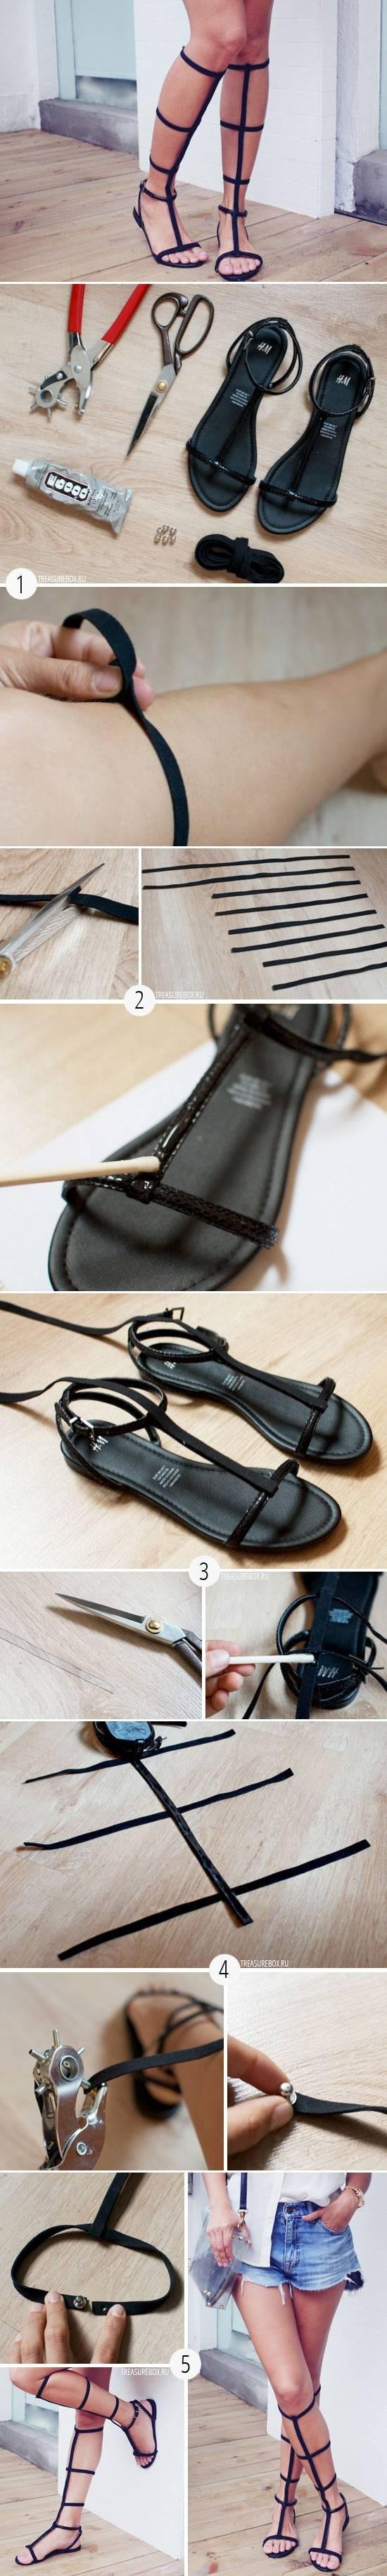 DIY Nice Old Sandal Transformation DIY Projects | UsefulDIY.com